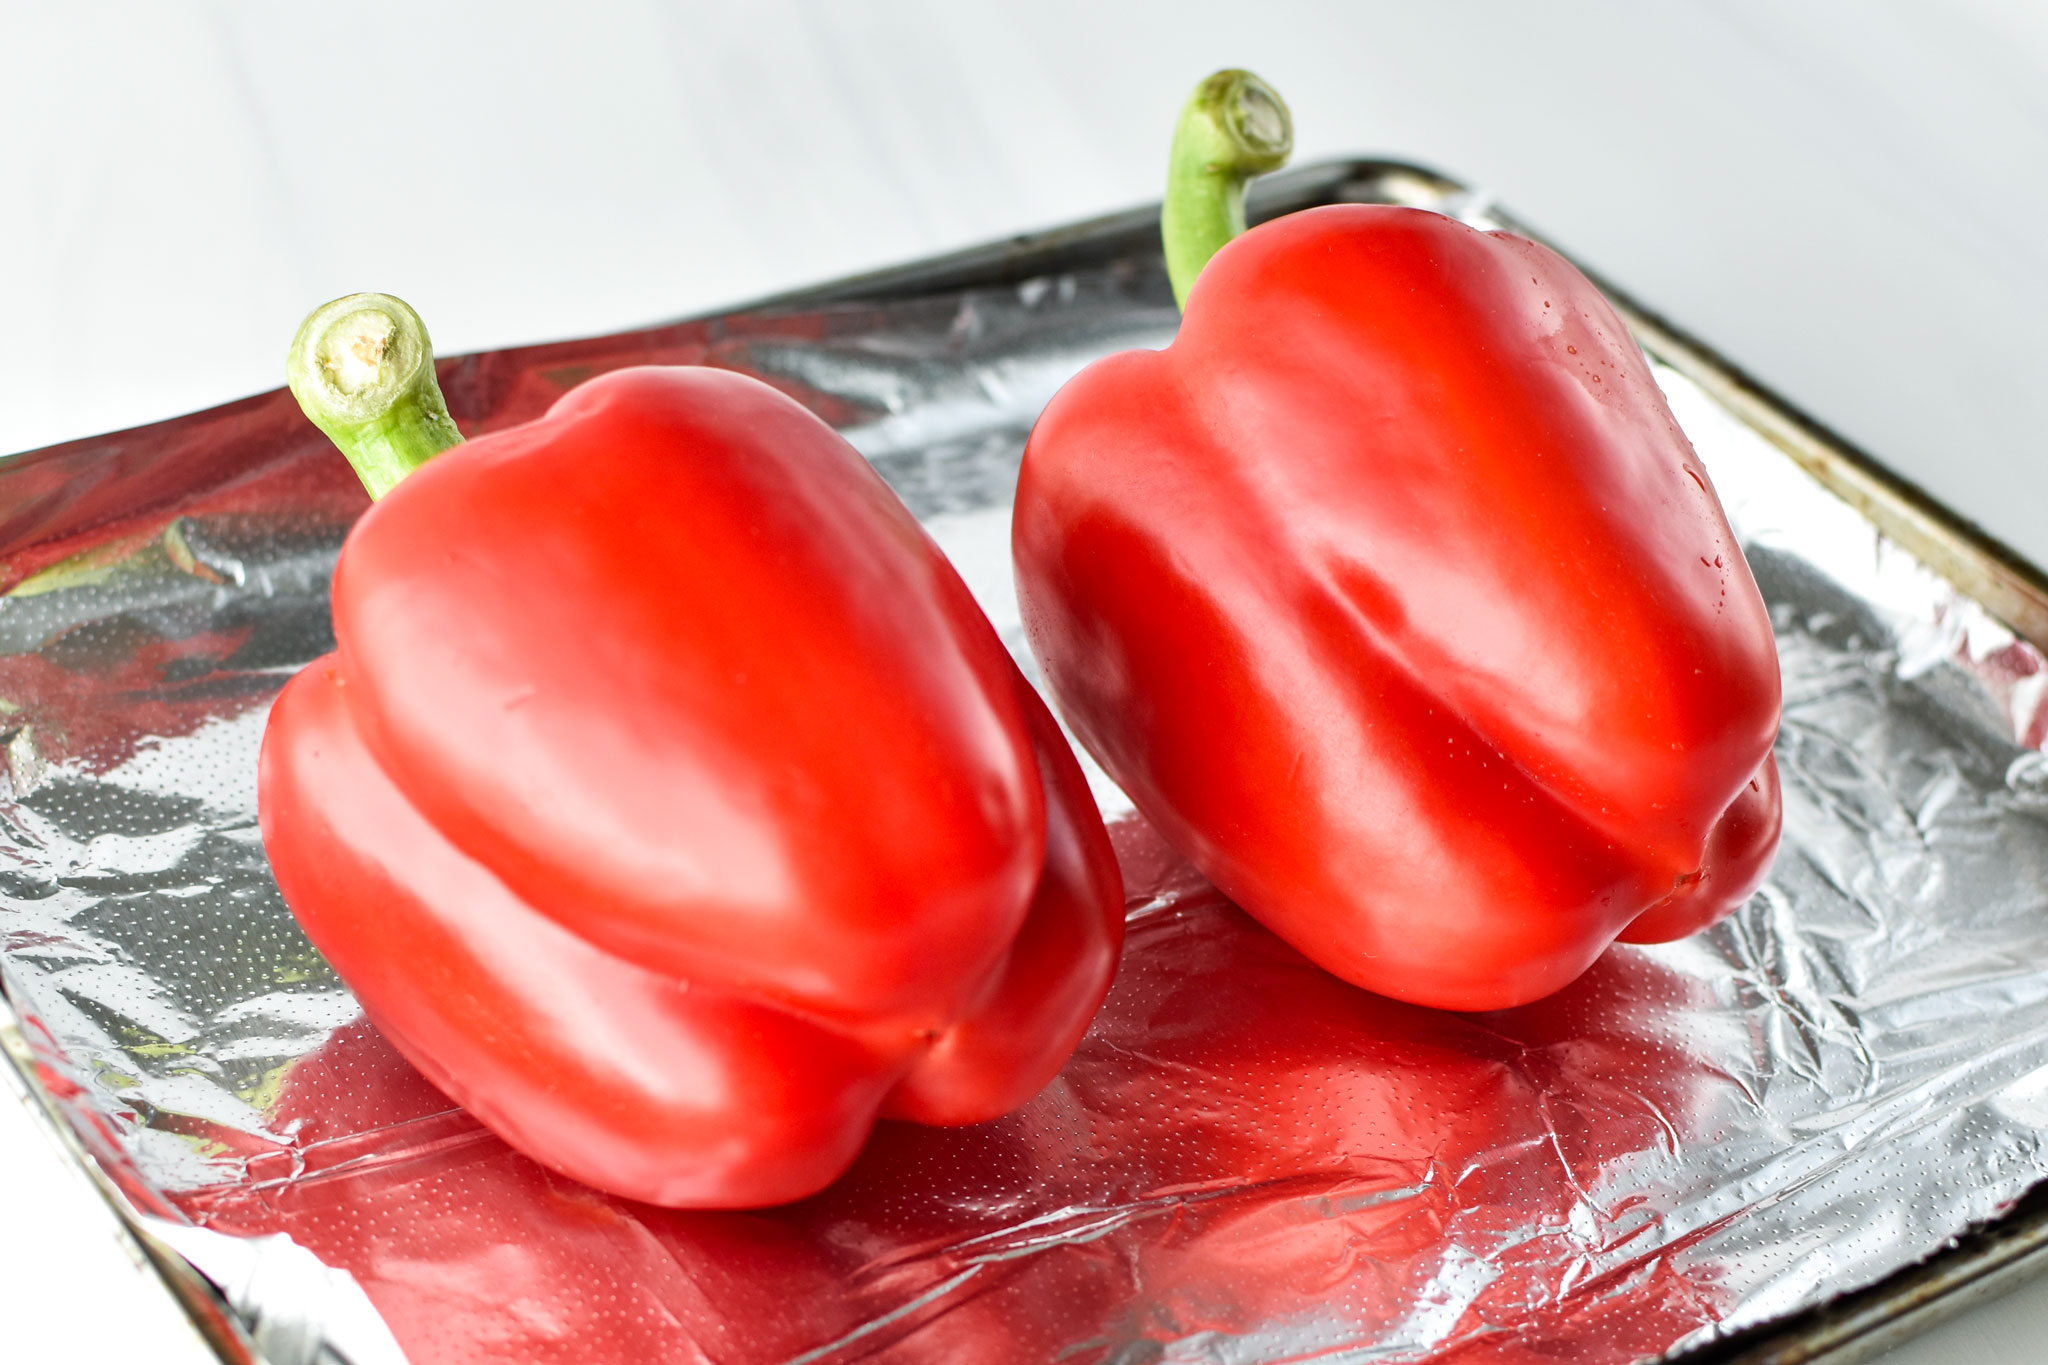 two raw red bell peppers on a sheet pan